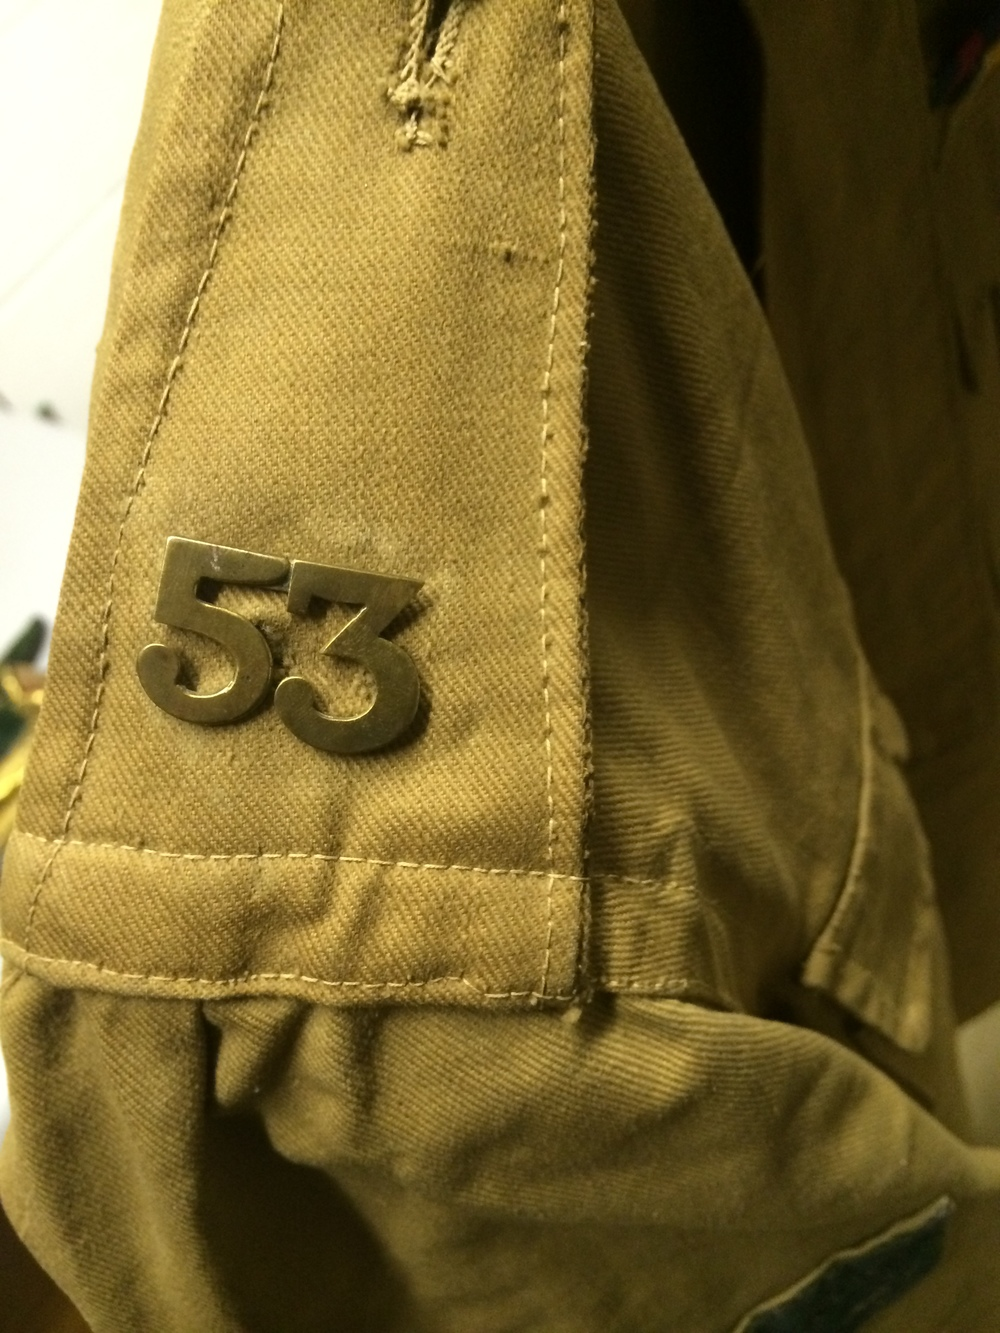 Arjan Singh's uniform (detail)